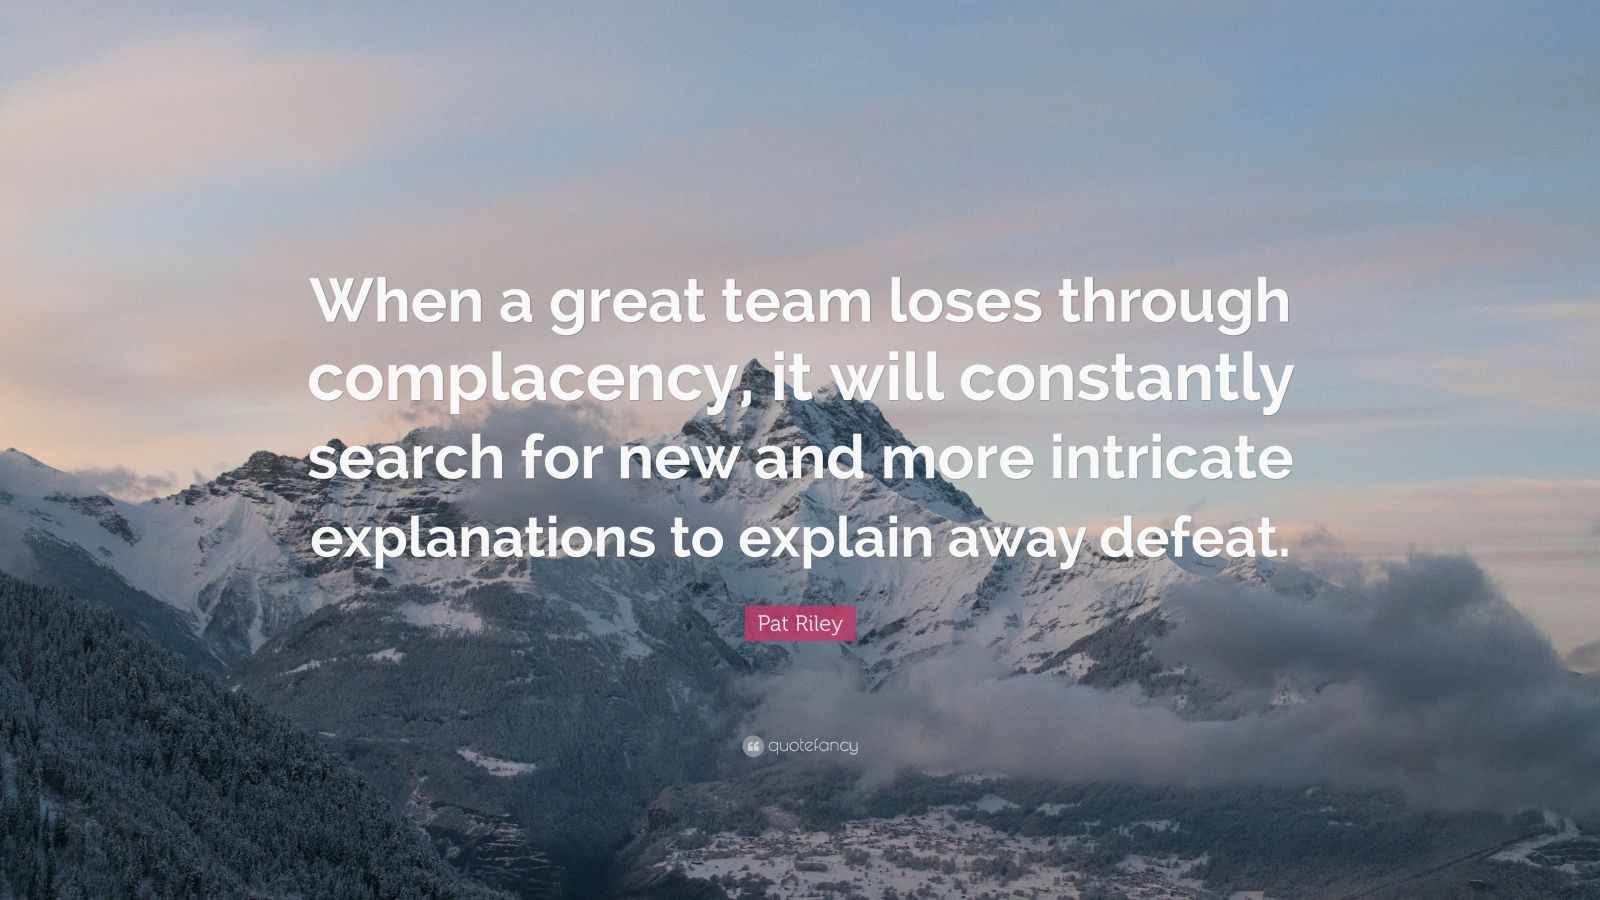 """Pat Riley Quote: """"When a great team loses through complacency, it will constantly search for new and more intricate explanations to explain away defeat."""""""